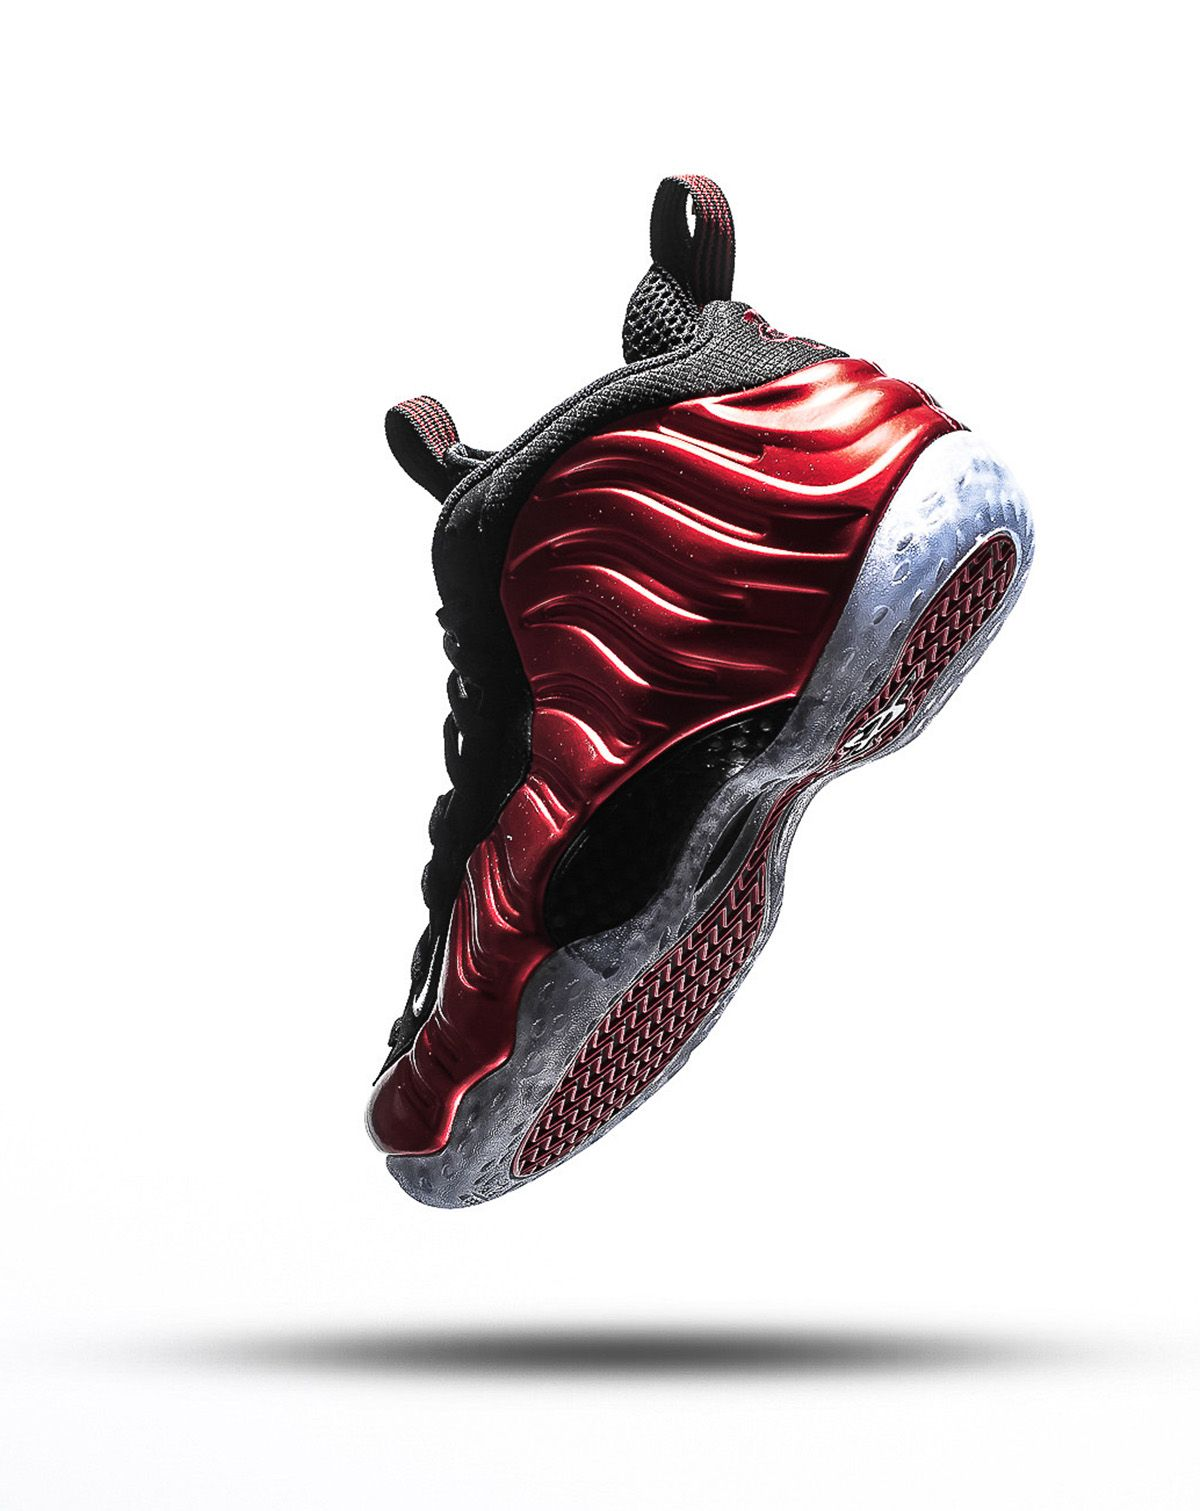 detailed look 9d2cd 5acbd Nike Air Foamposite One  Metallic Red  2017 Reissue - EU Kicks  Sneaker  Magazine